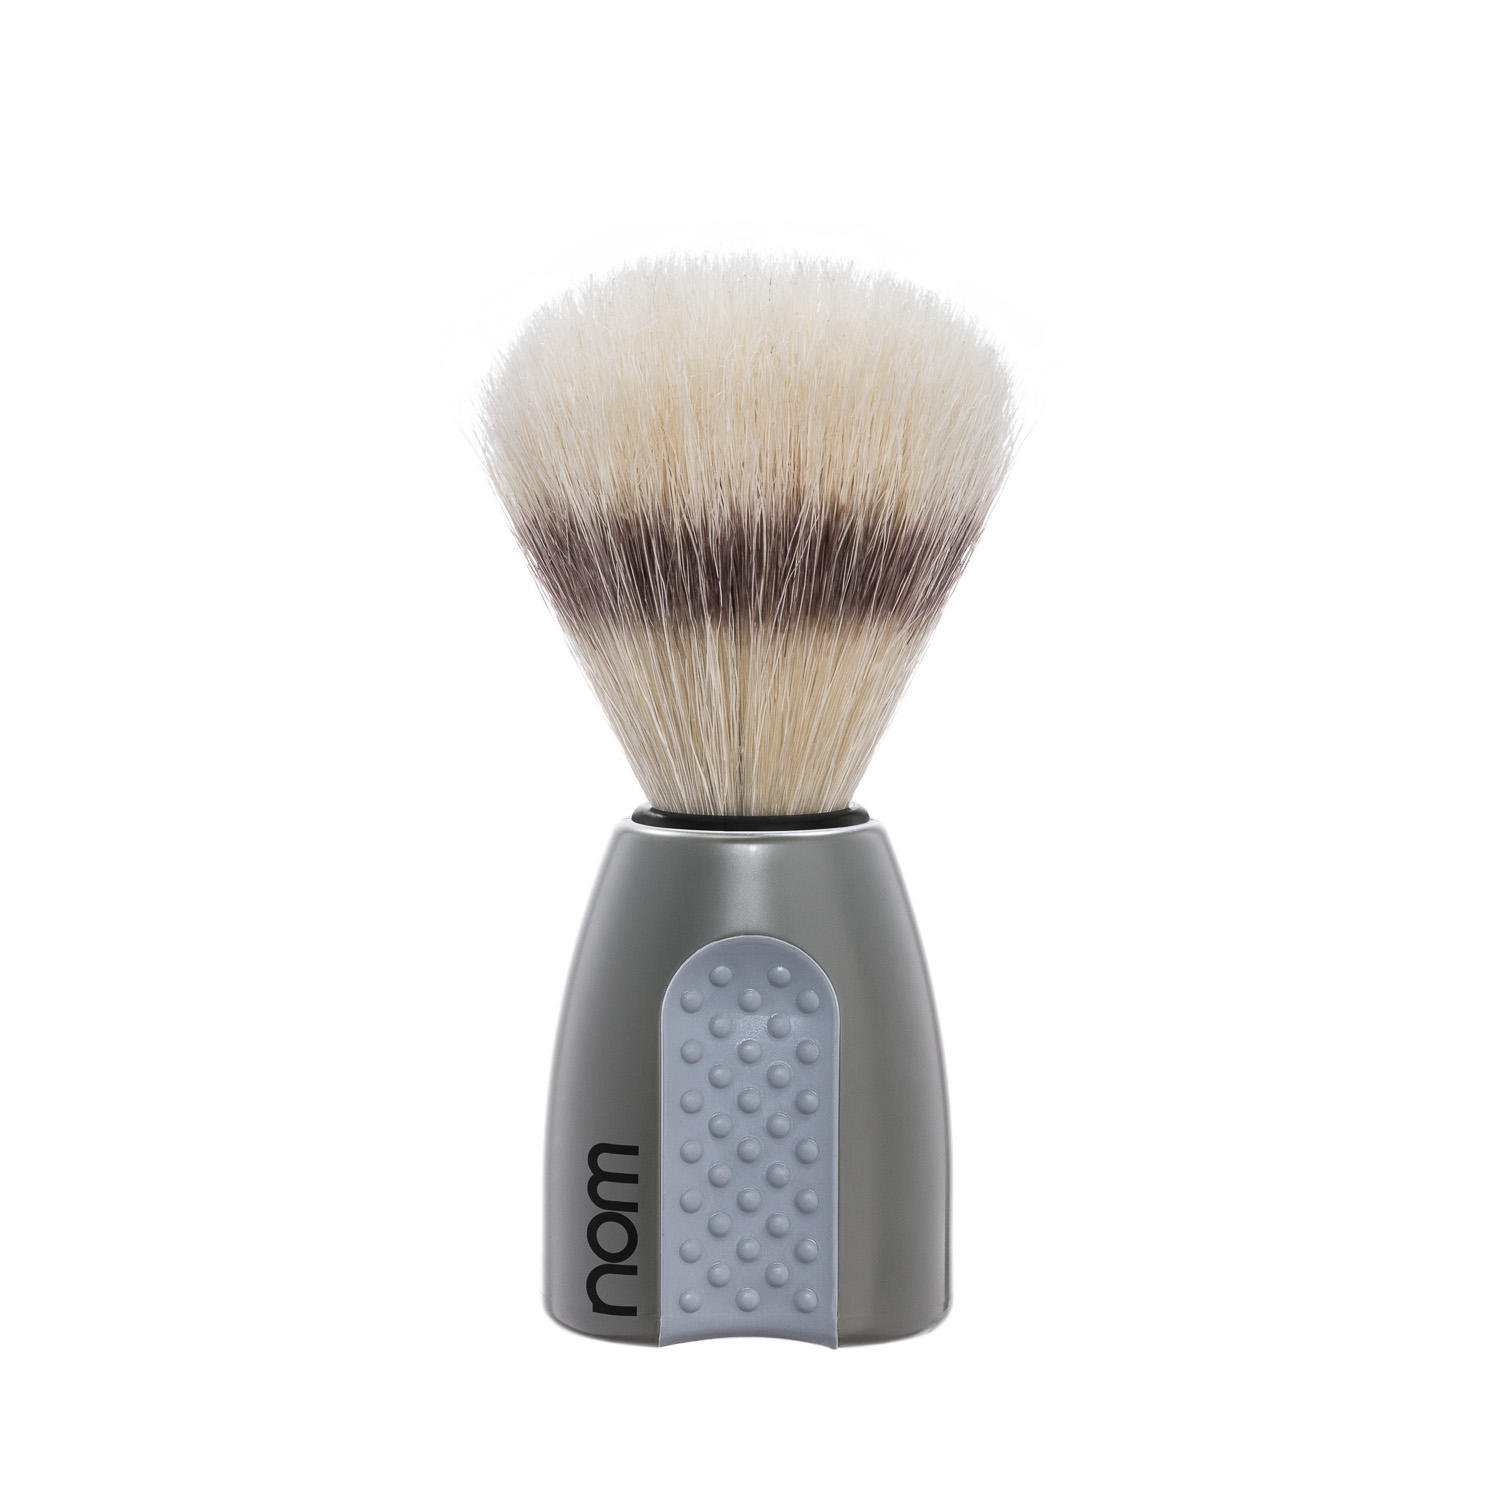 ERIK41GR NOM, ERIK grey, pure bristle shaving brush